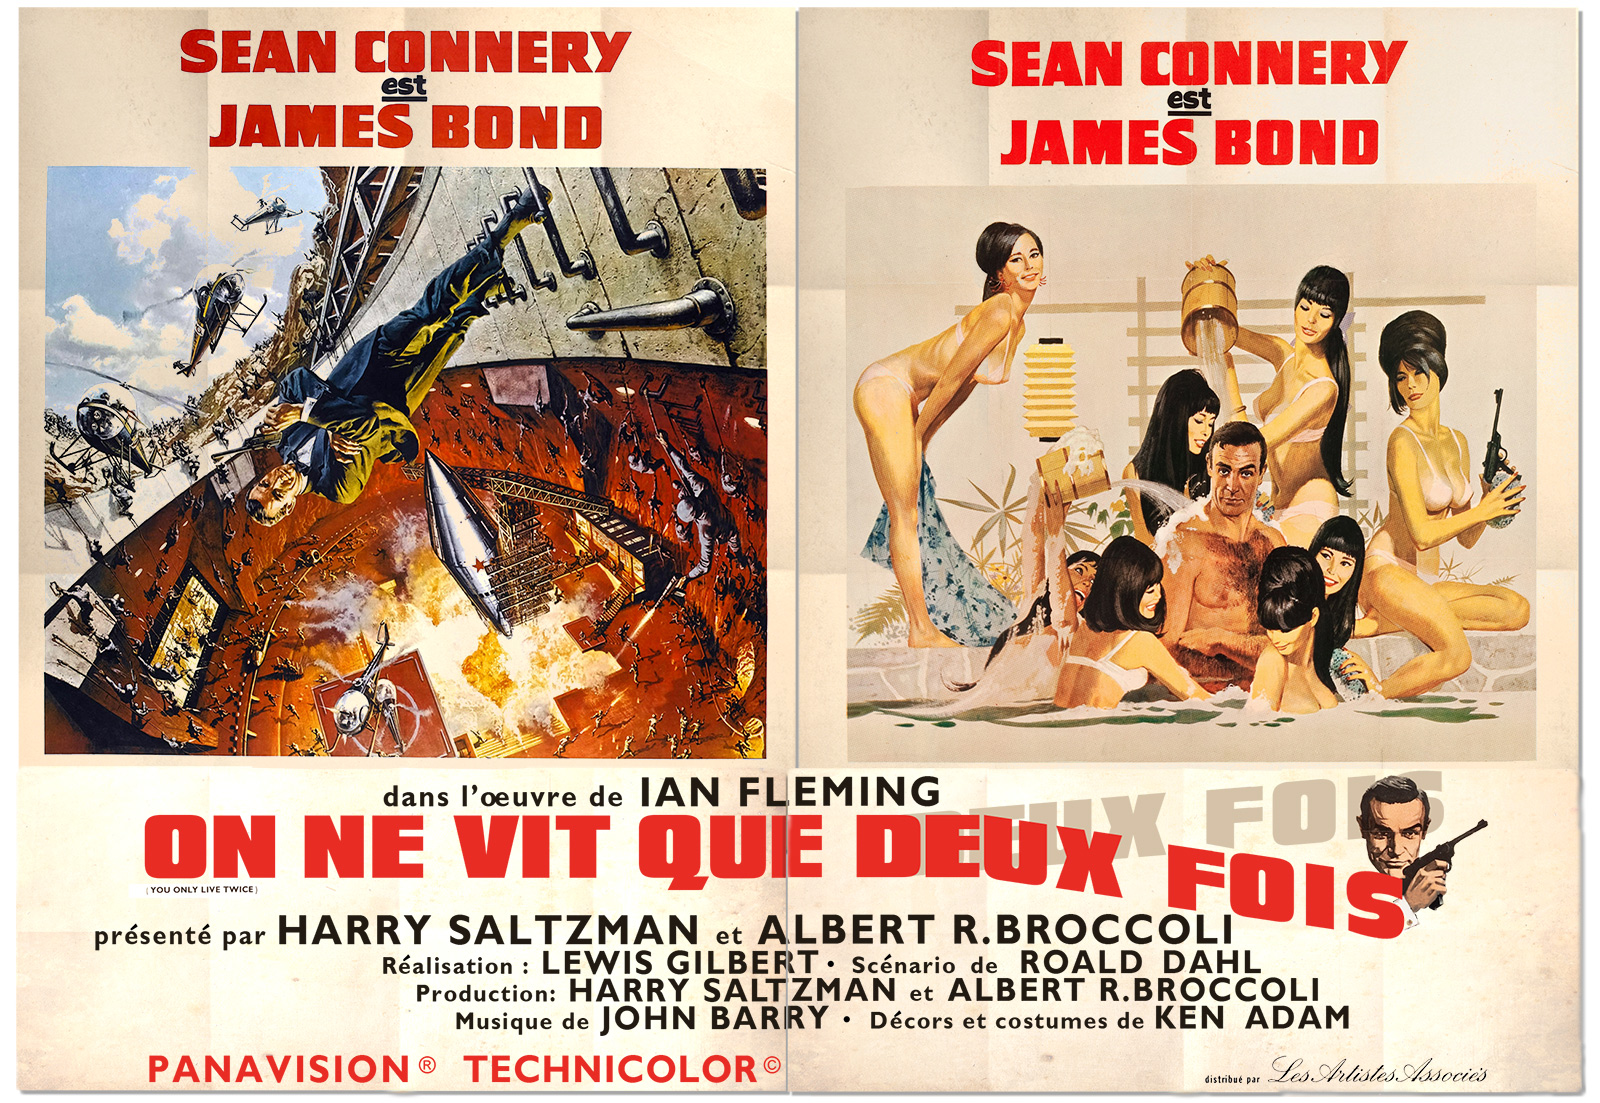 Illustrated 007 - The Art of James Bond: French You Only